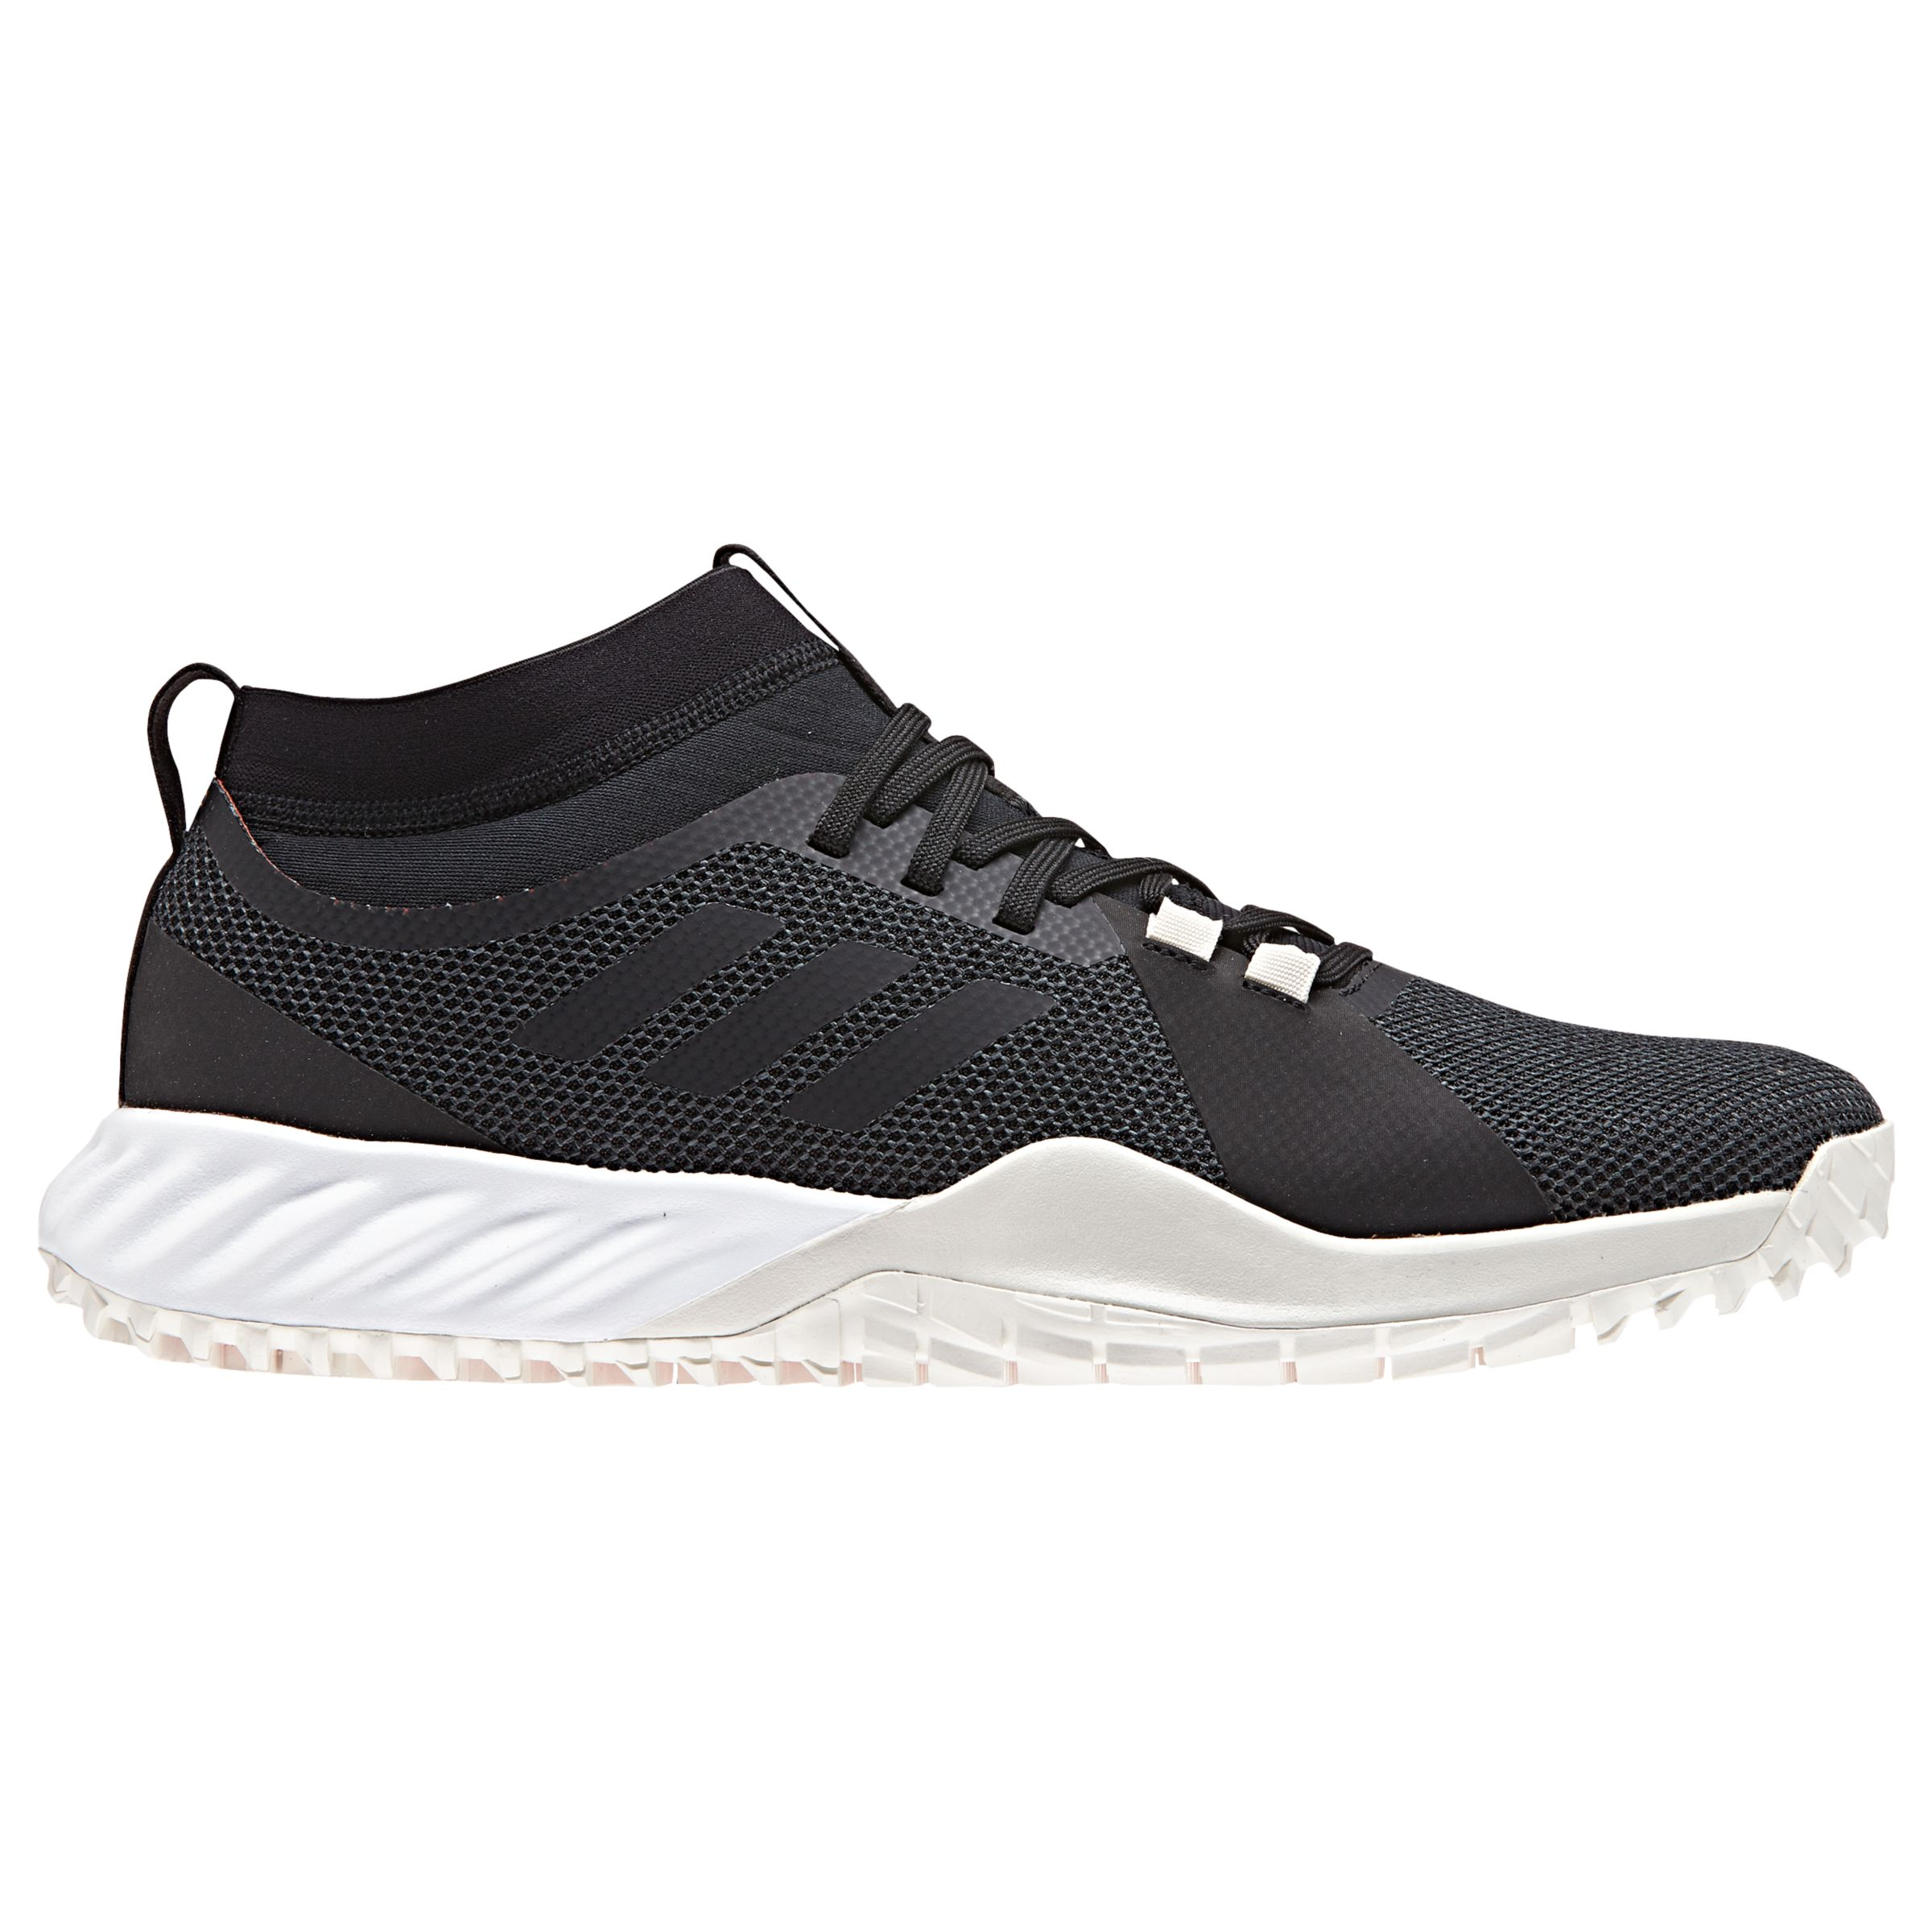 reputable site dff95 4060a adidas CrazyTrain PRO 3.0 TRF Mens Training Shoes, Carbon at John Lewis   Partners